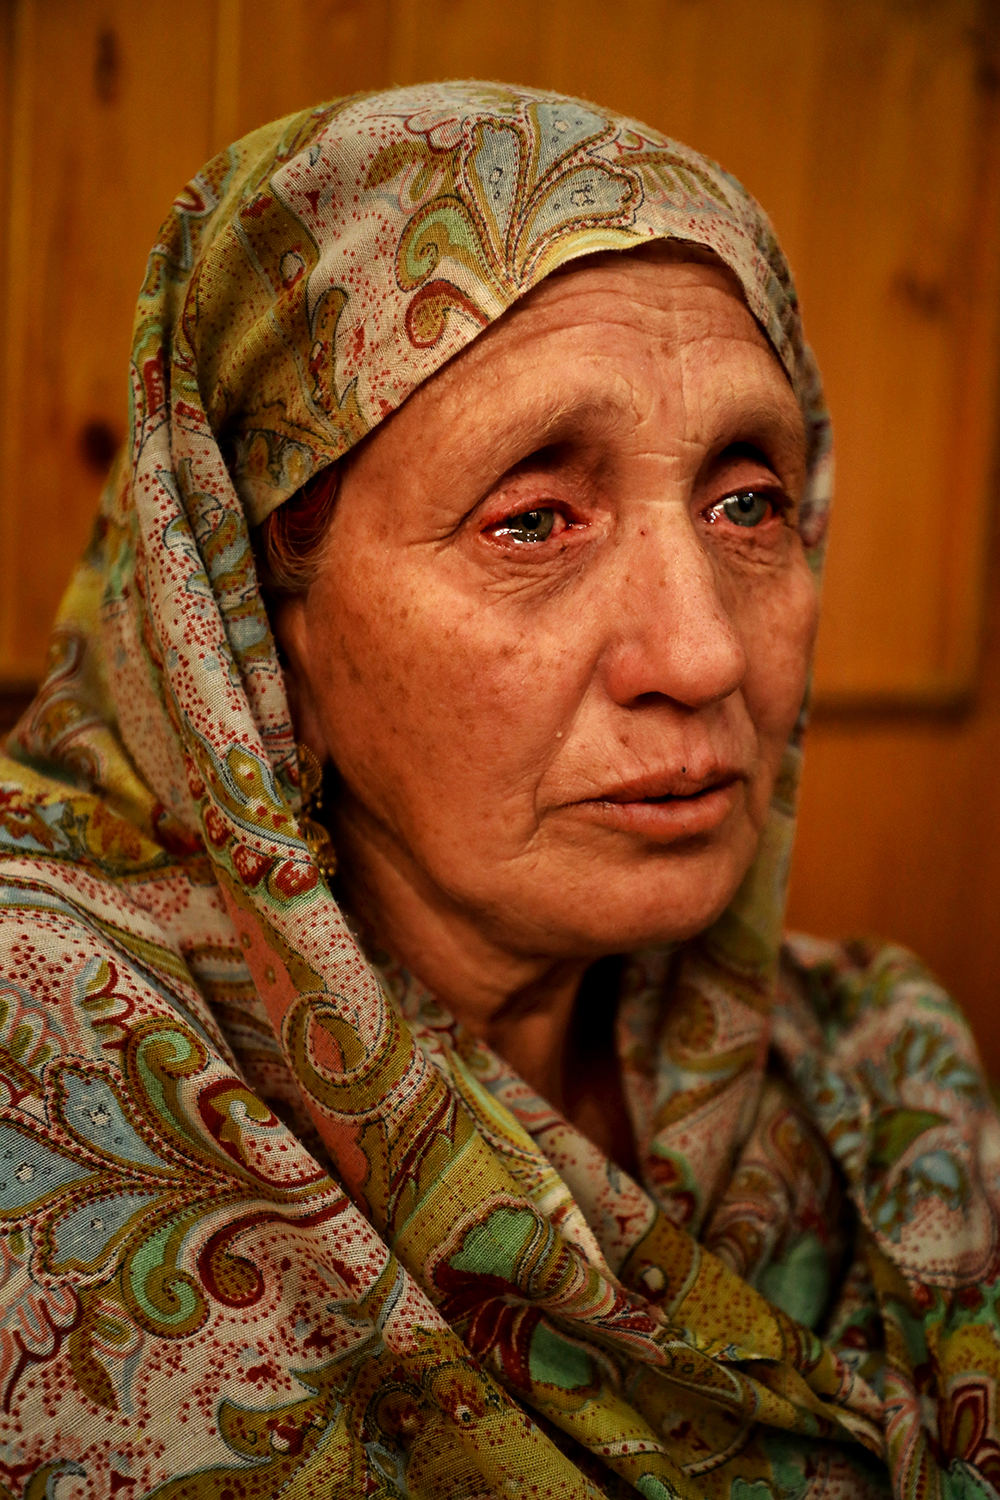 Javaida Ahmad mourns her husband in Nawakadal on May 31. Manzoor Ahmad died in the explosion in Srinagar, leaving his wife to care for her mother and six daughters. Her husband was the only male member of his family.